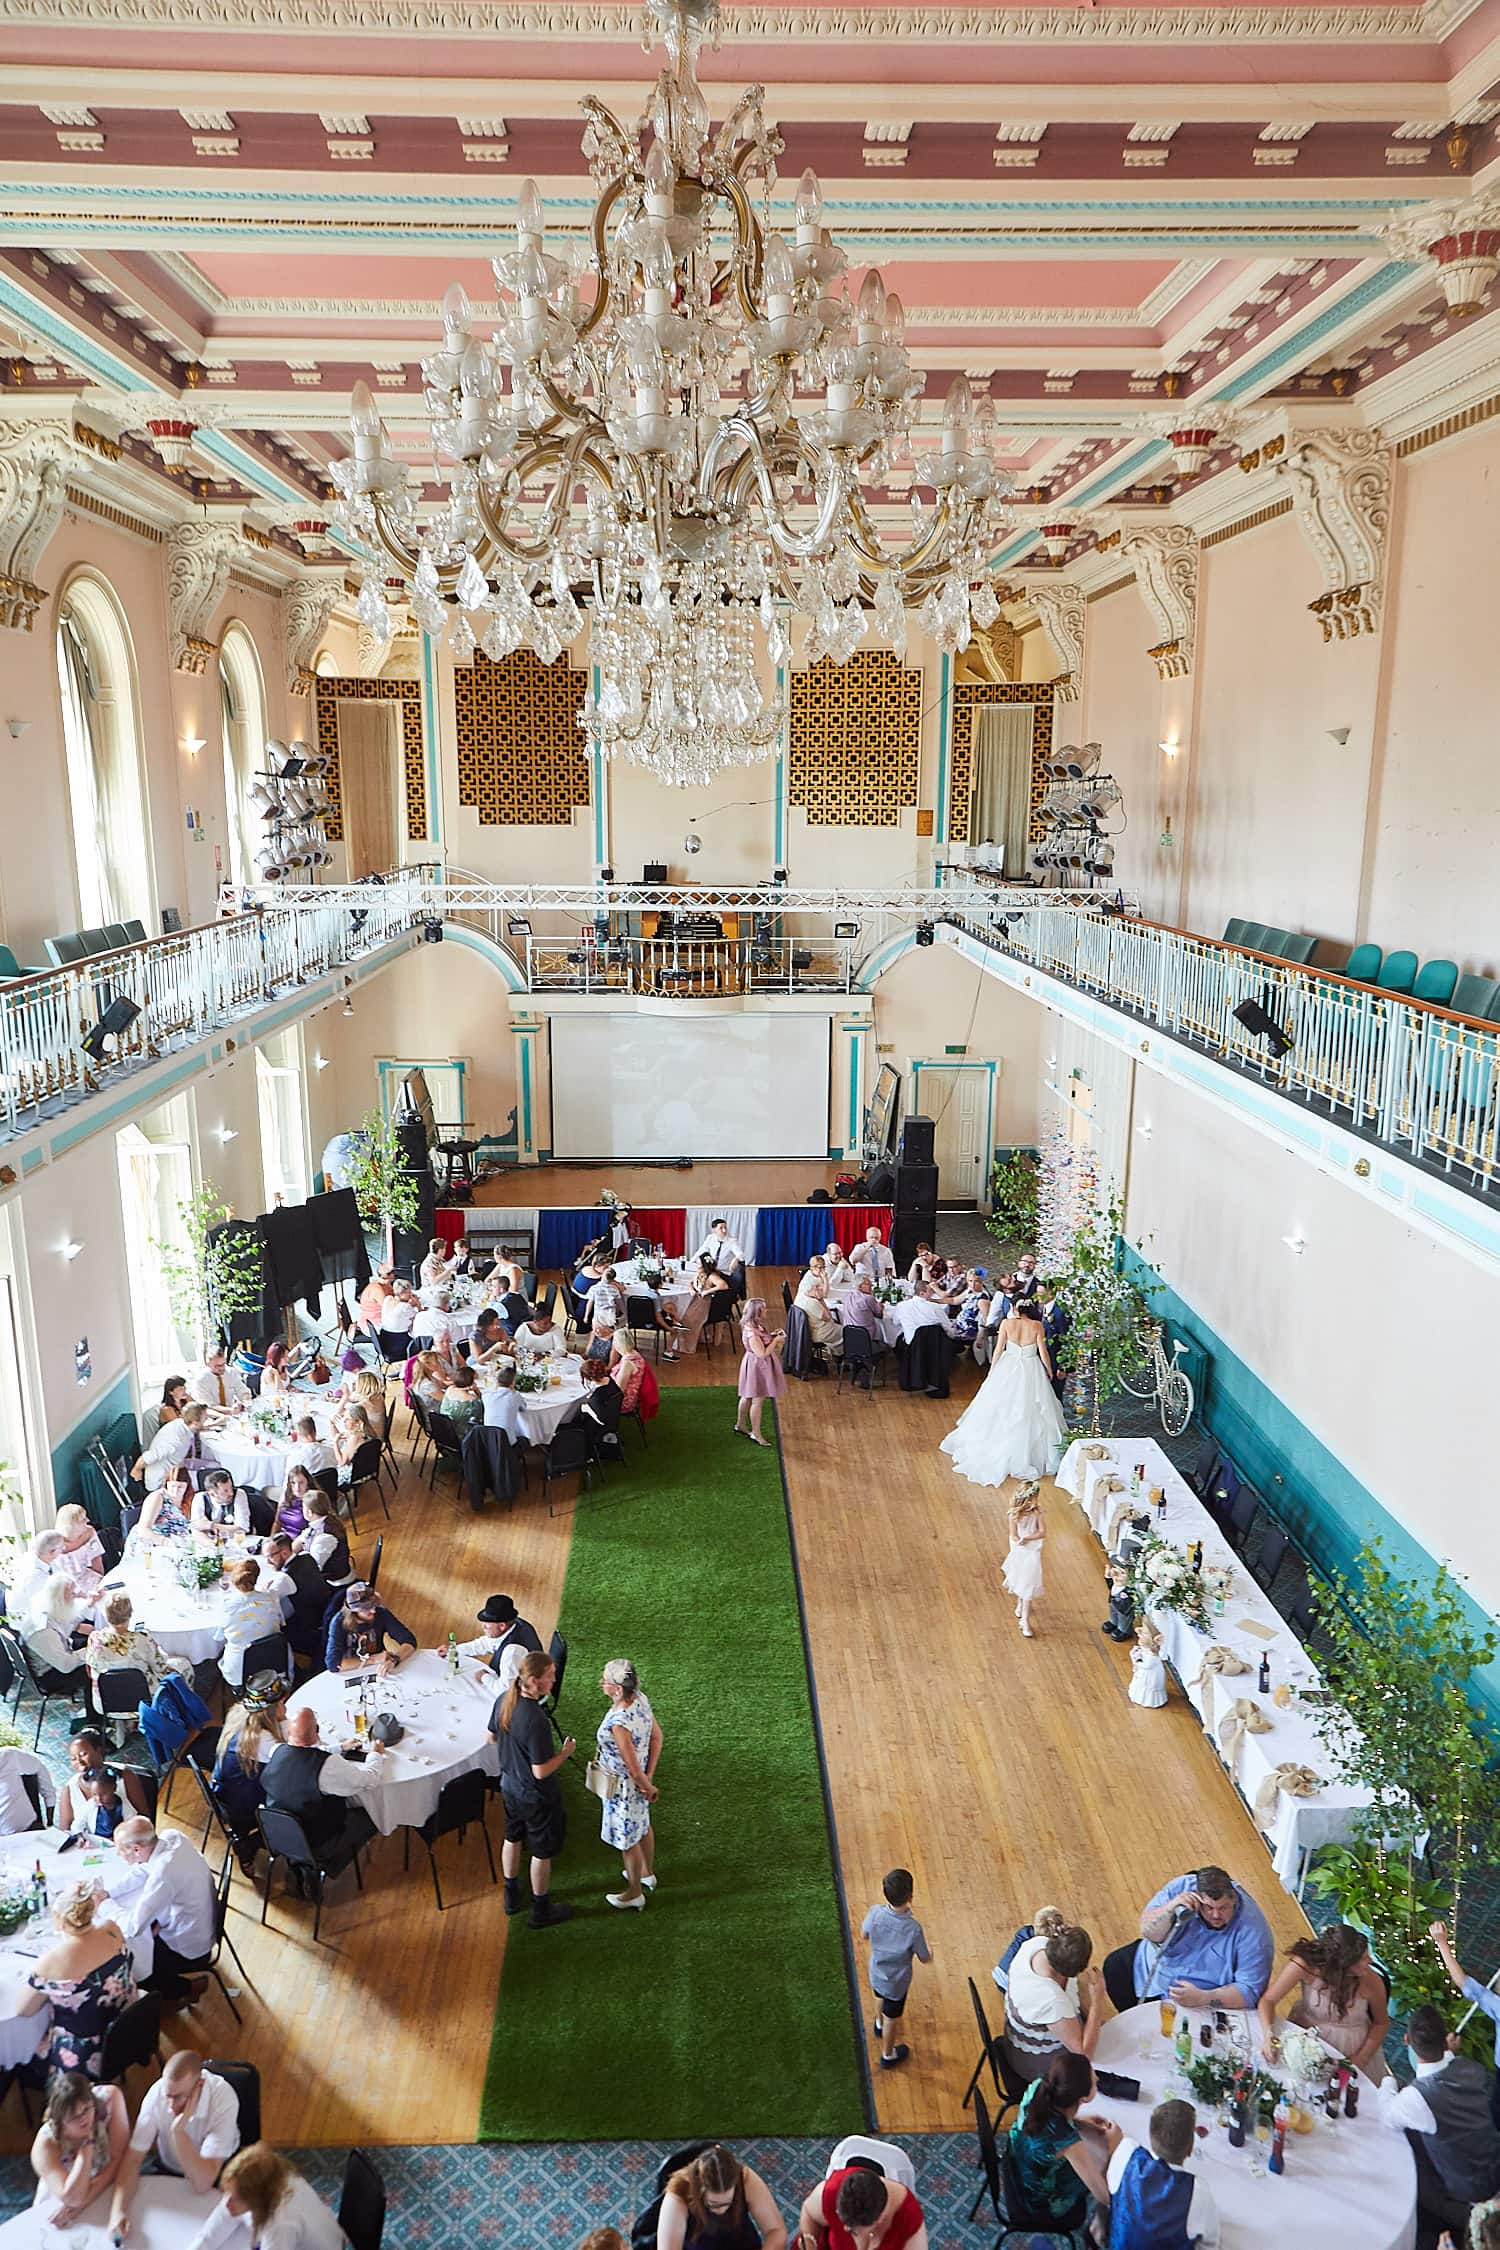 An overview of a wedding day at Louth Town Hall